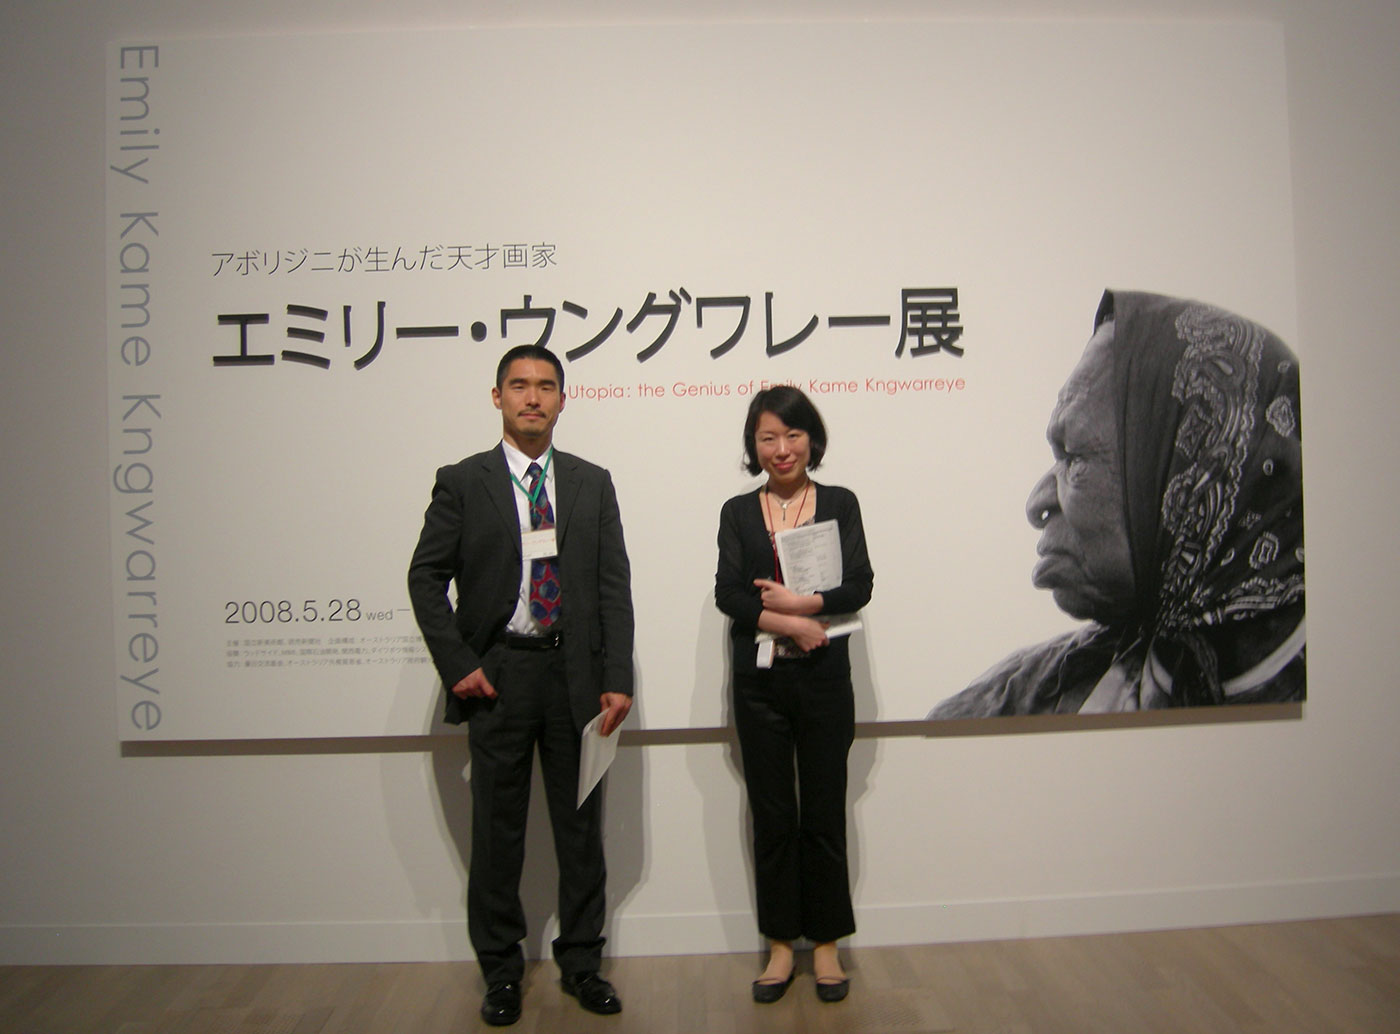 A man and woman standing in front of a large exhibition banner. - click to view larger image